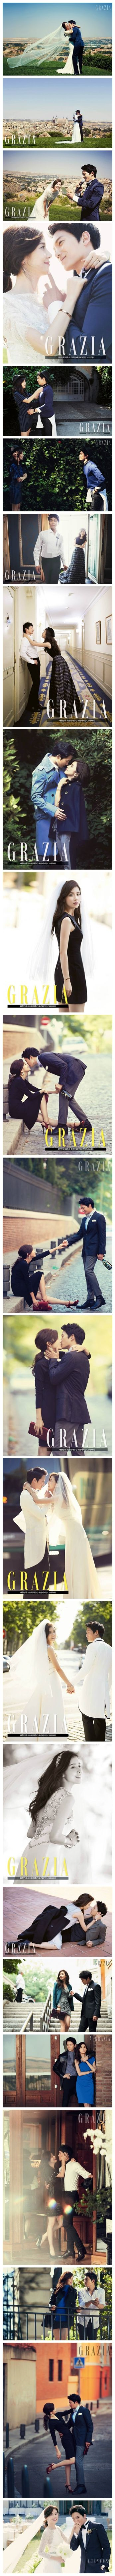 Ji Sung and Lee Bo Young's Wedding Pictures... <3 It's beautiful (:  Photo Credit to Grazia Korea! www.grazia.co.kr